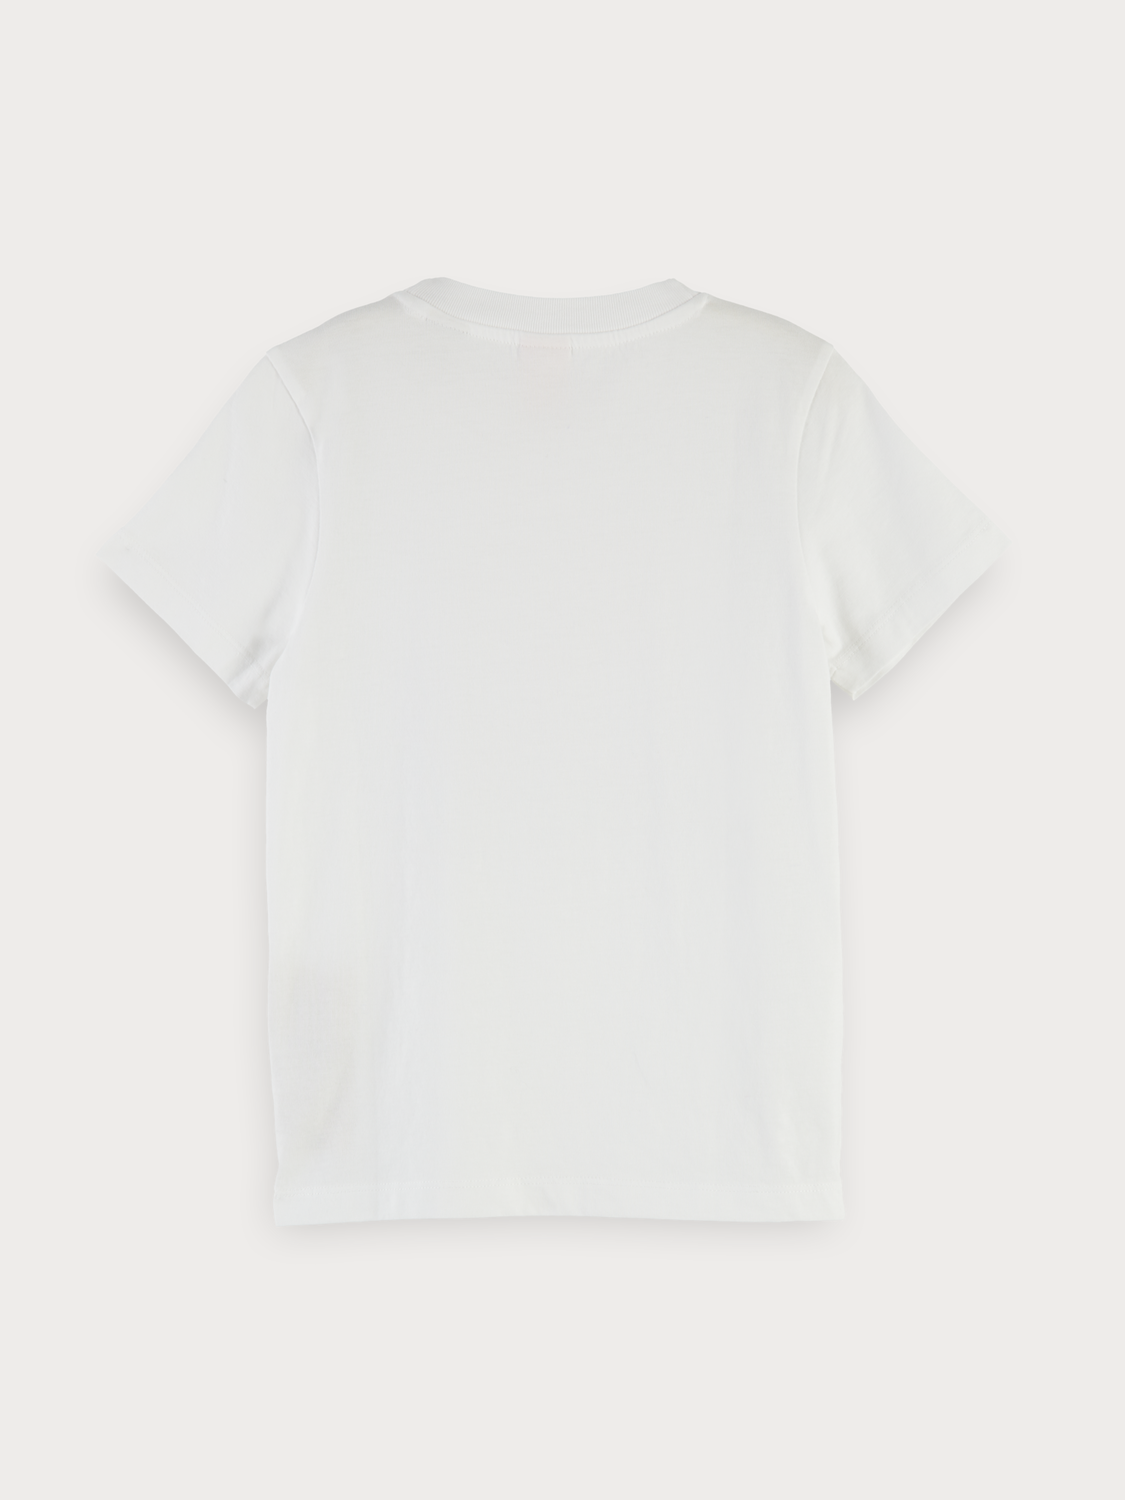 Girls Label artwork t-shirt